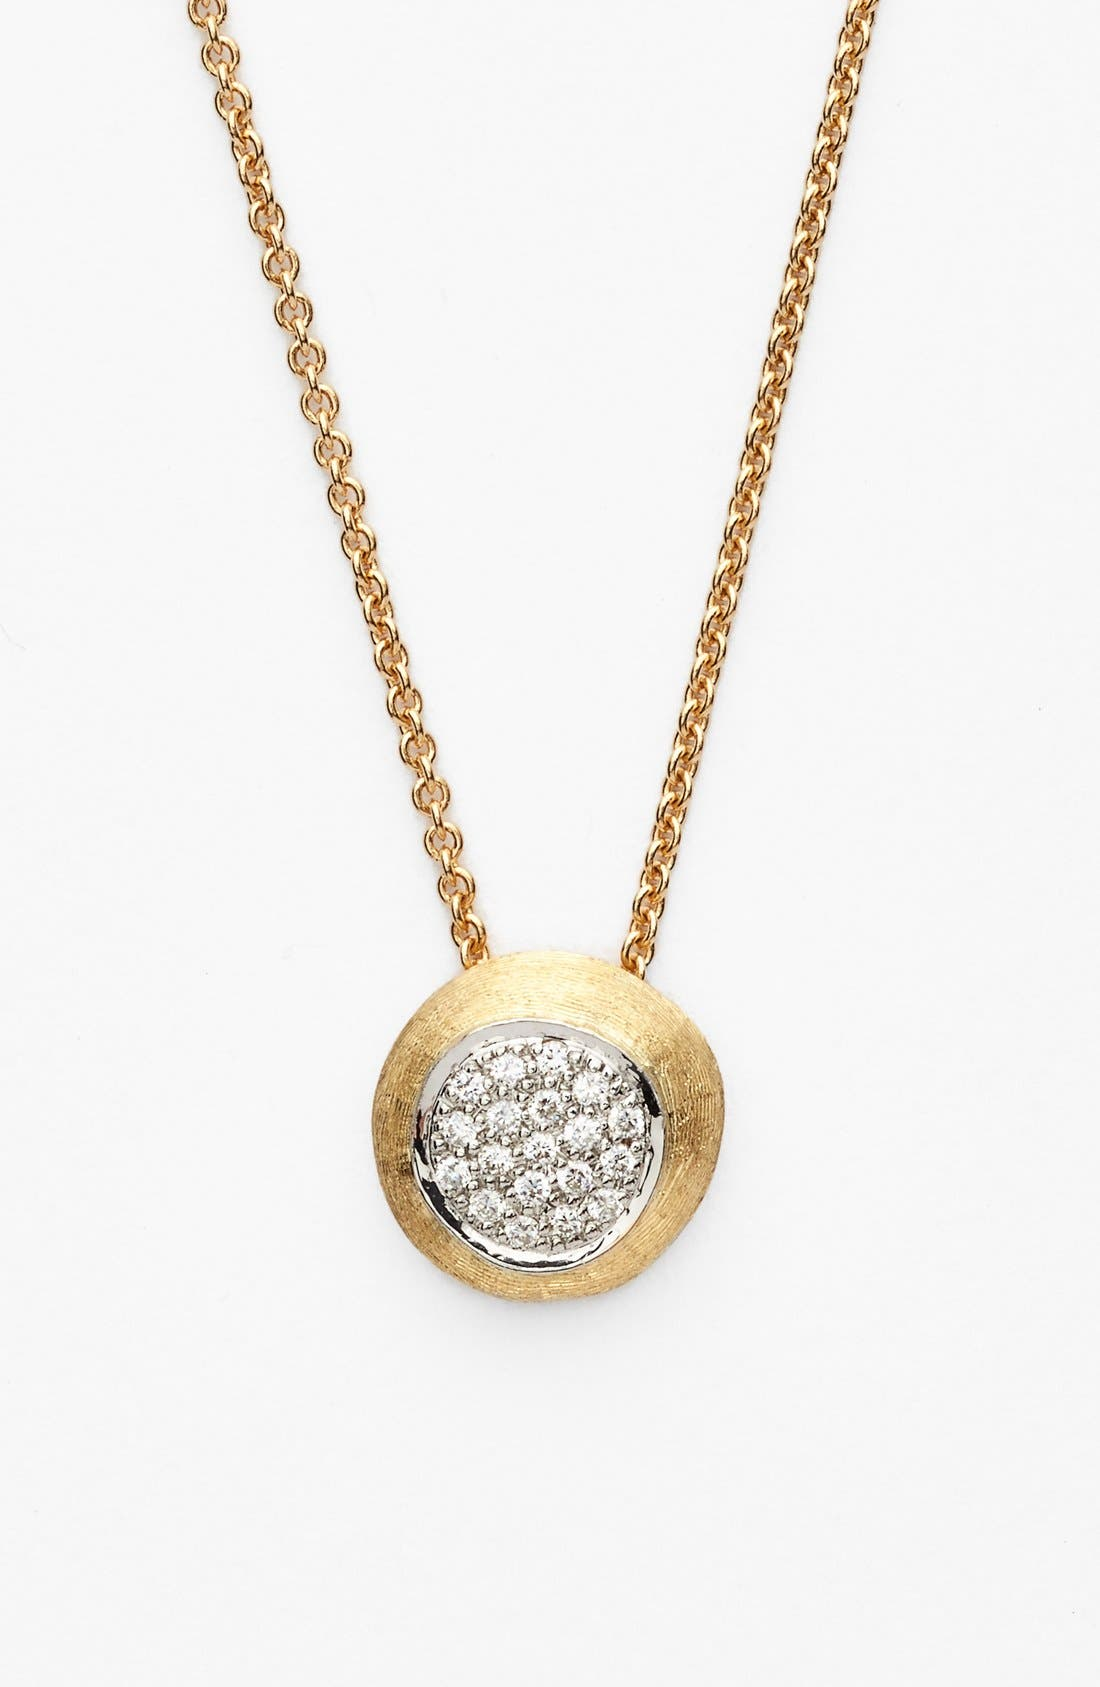 MARCO BICEGO Delicati - Jaipur Diamond Pendant Necklace